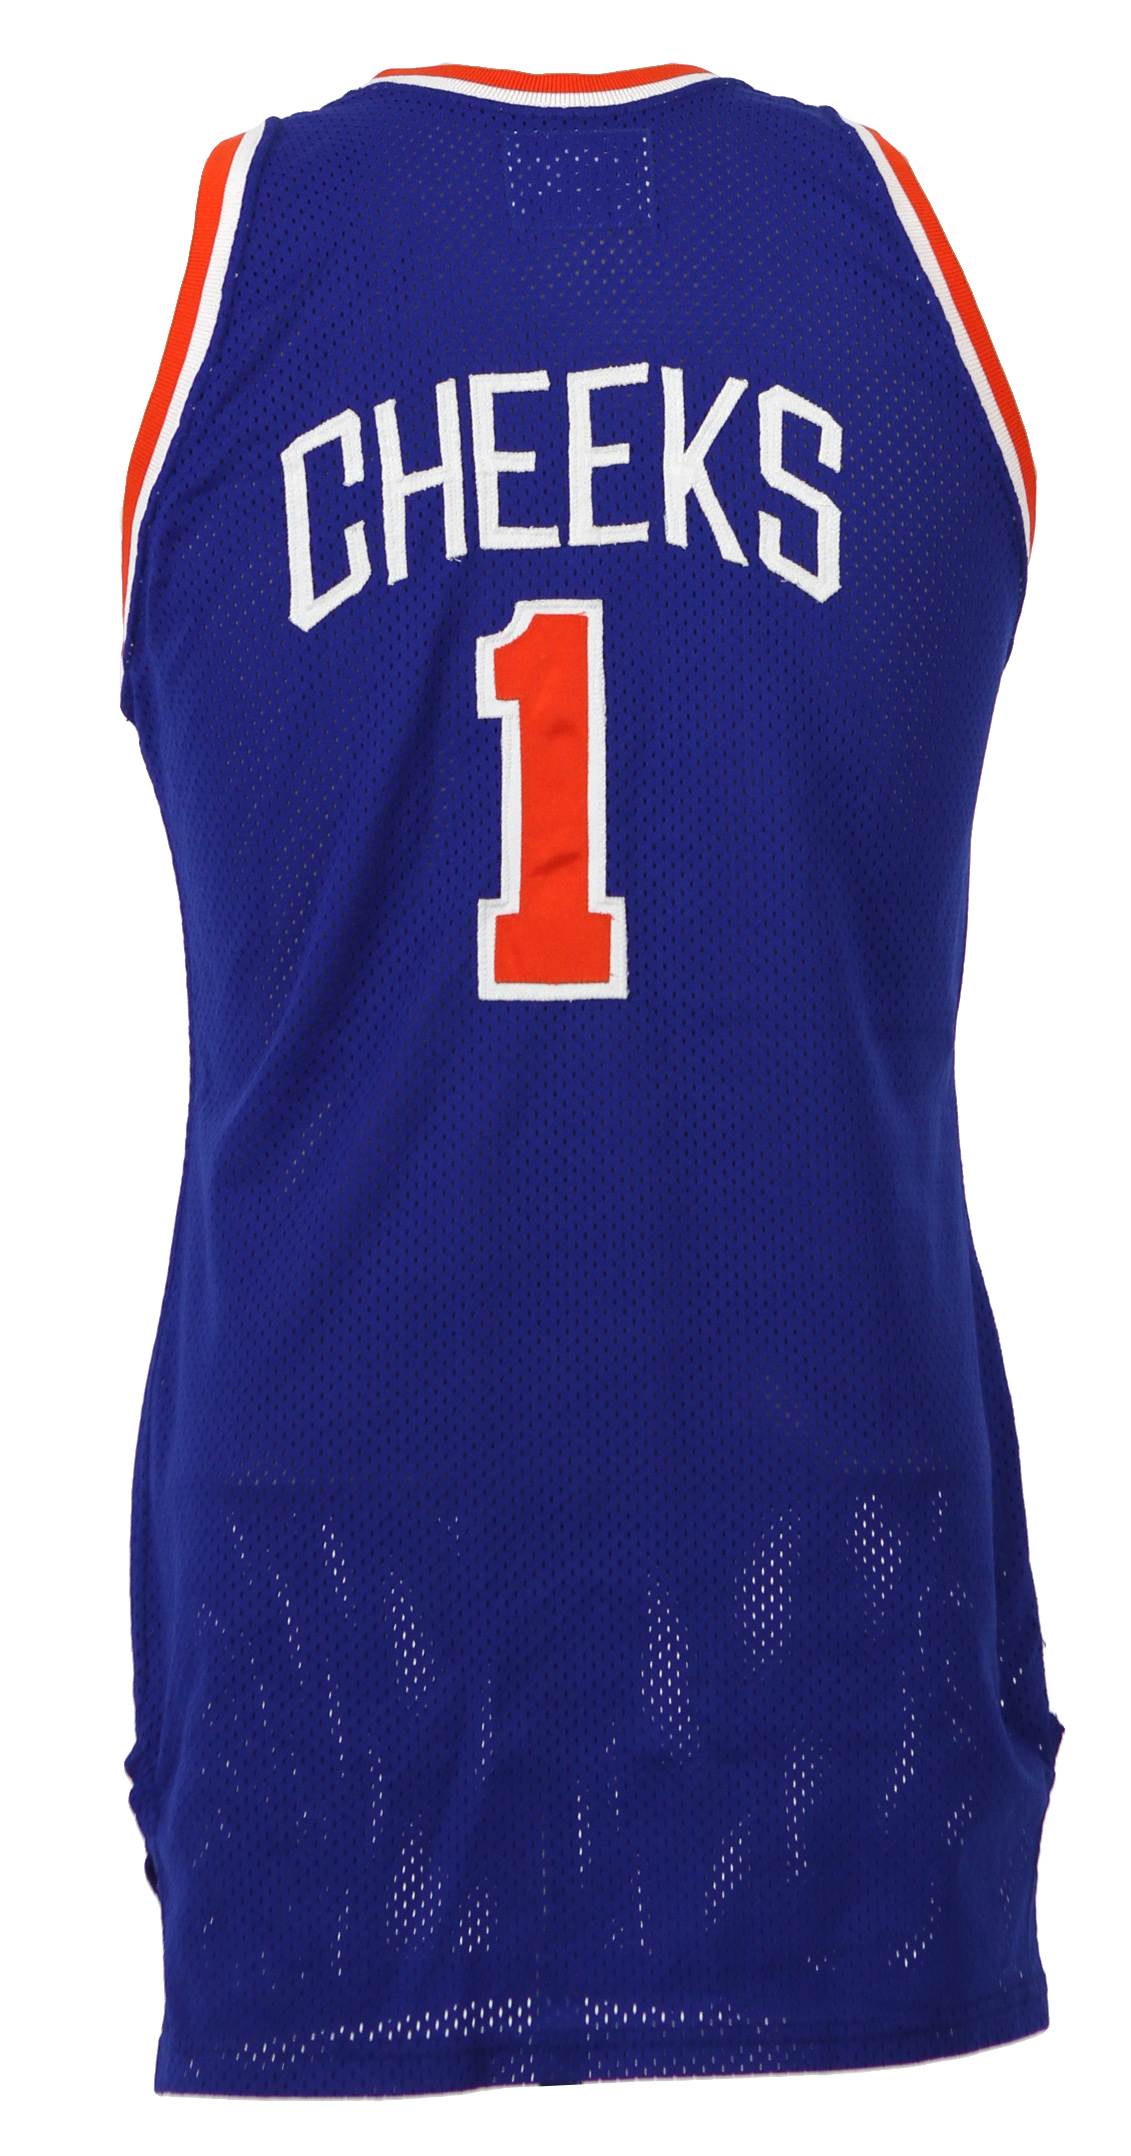 0a790c3aa93e 1989-90 Maurice Cheeks New York Knicks Game Worn Road Jersey (MEARS LOA).  Touch to zoom. Previous